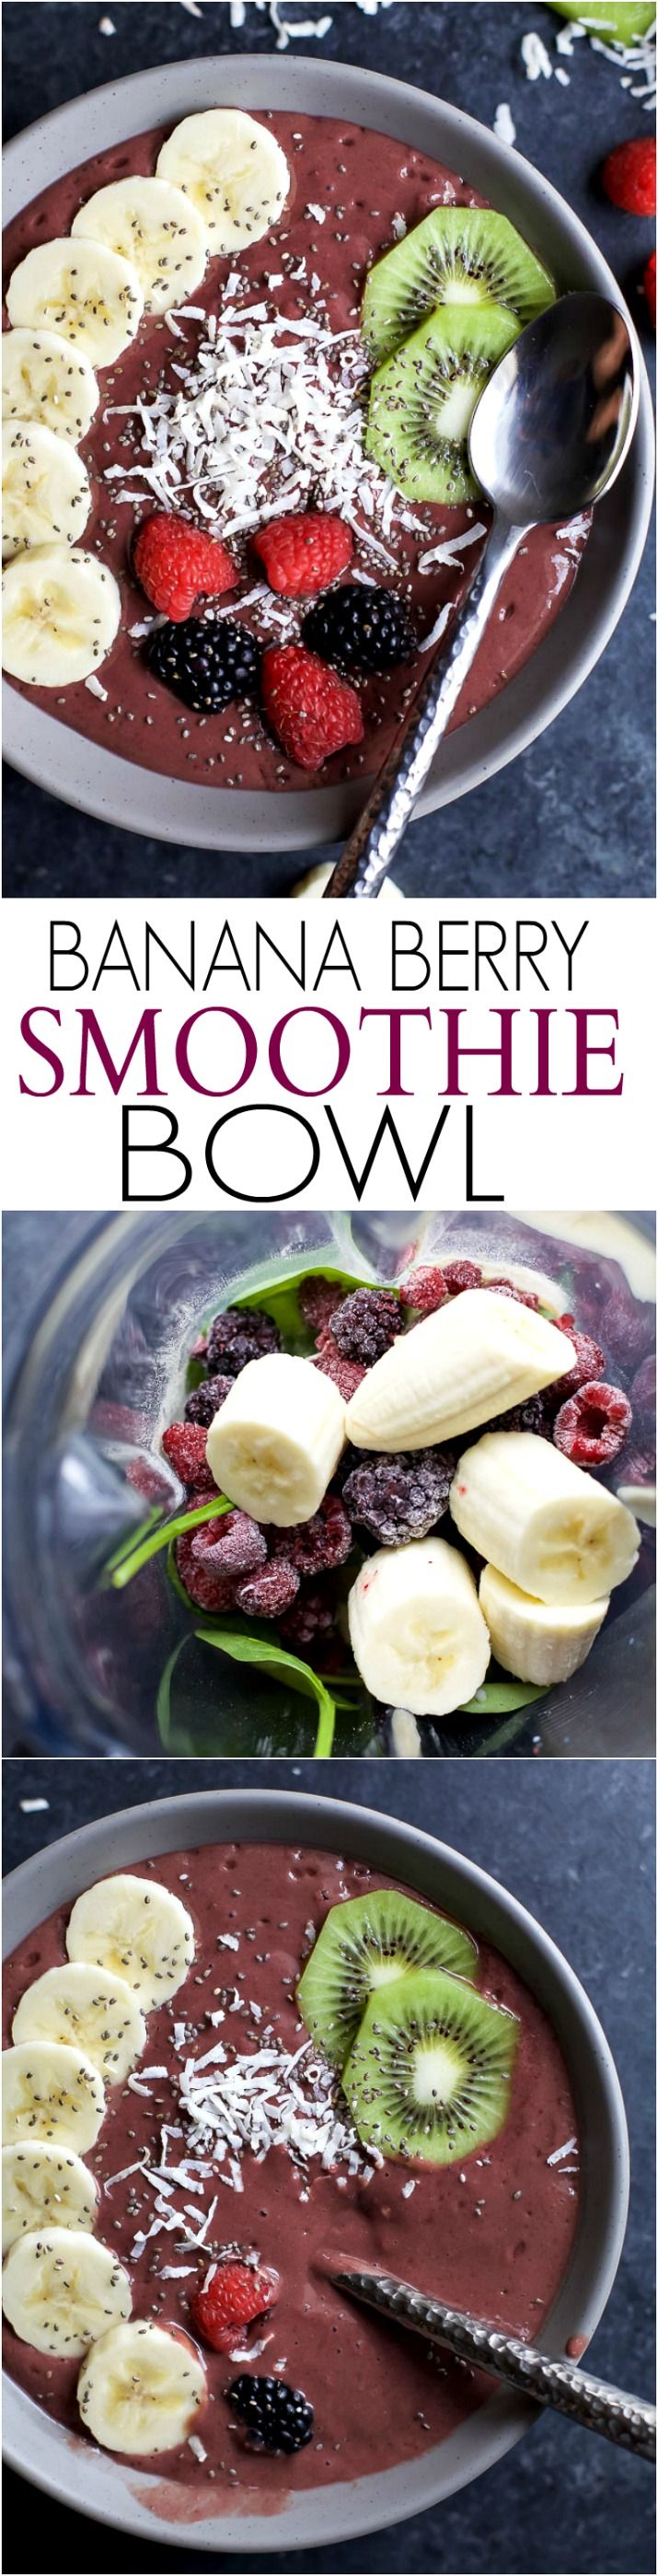 BANANA BERRY SMOOTHIE BOWL an easy delicious way to add protein, fiber, fruits, and veggies to your breakfast! Easily customize the toppings to your Smoothie Bowl. Tastes so good, you won't know it's healthy! | joyfulhealthyeats.com | gluten free recipes | healthy recipes | easy breakfast recipes | dairy free